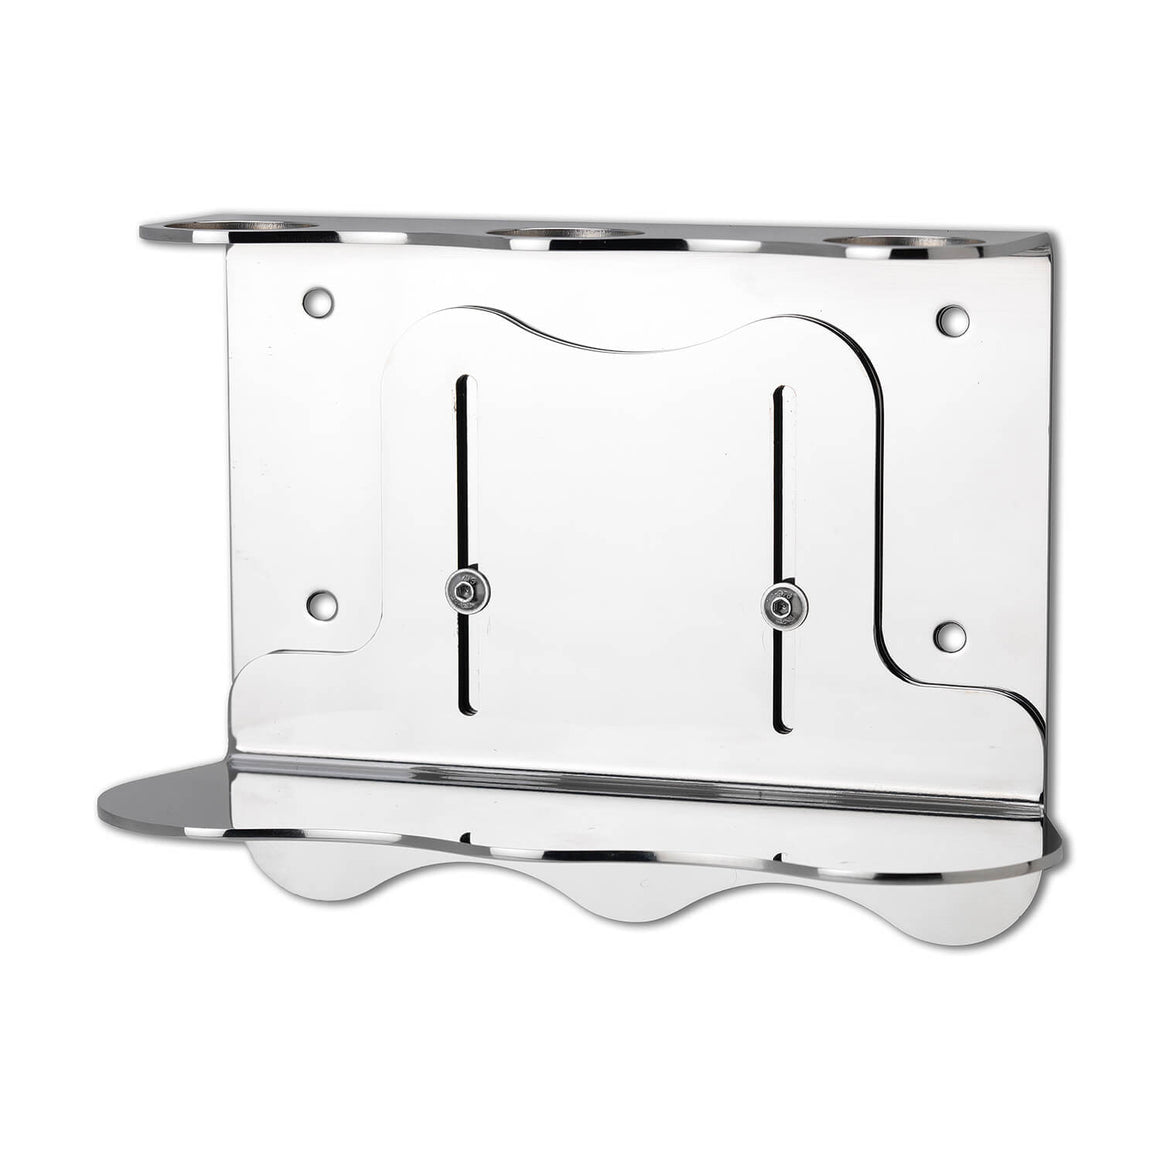 Triple 300ml Standard Wall-Mounted Holder - Hand Polished